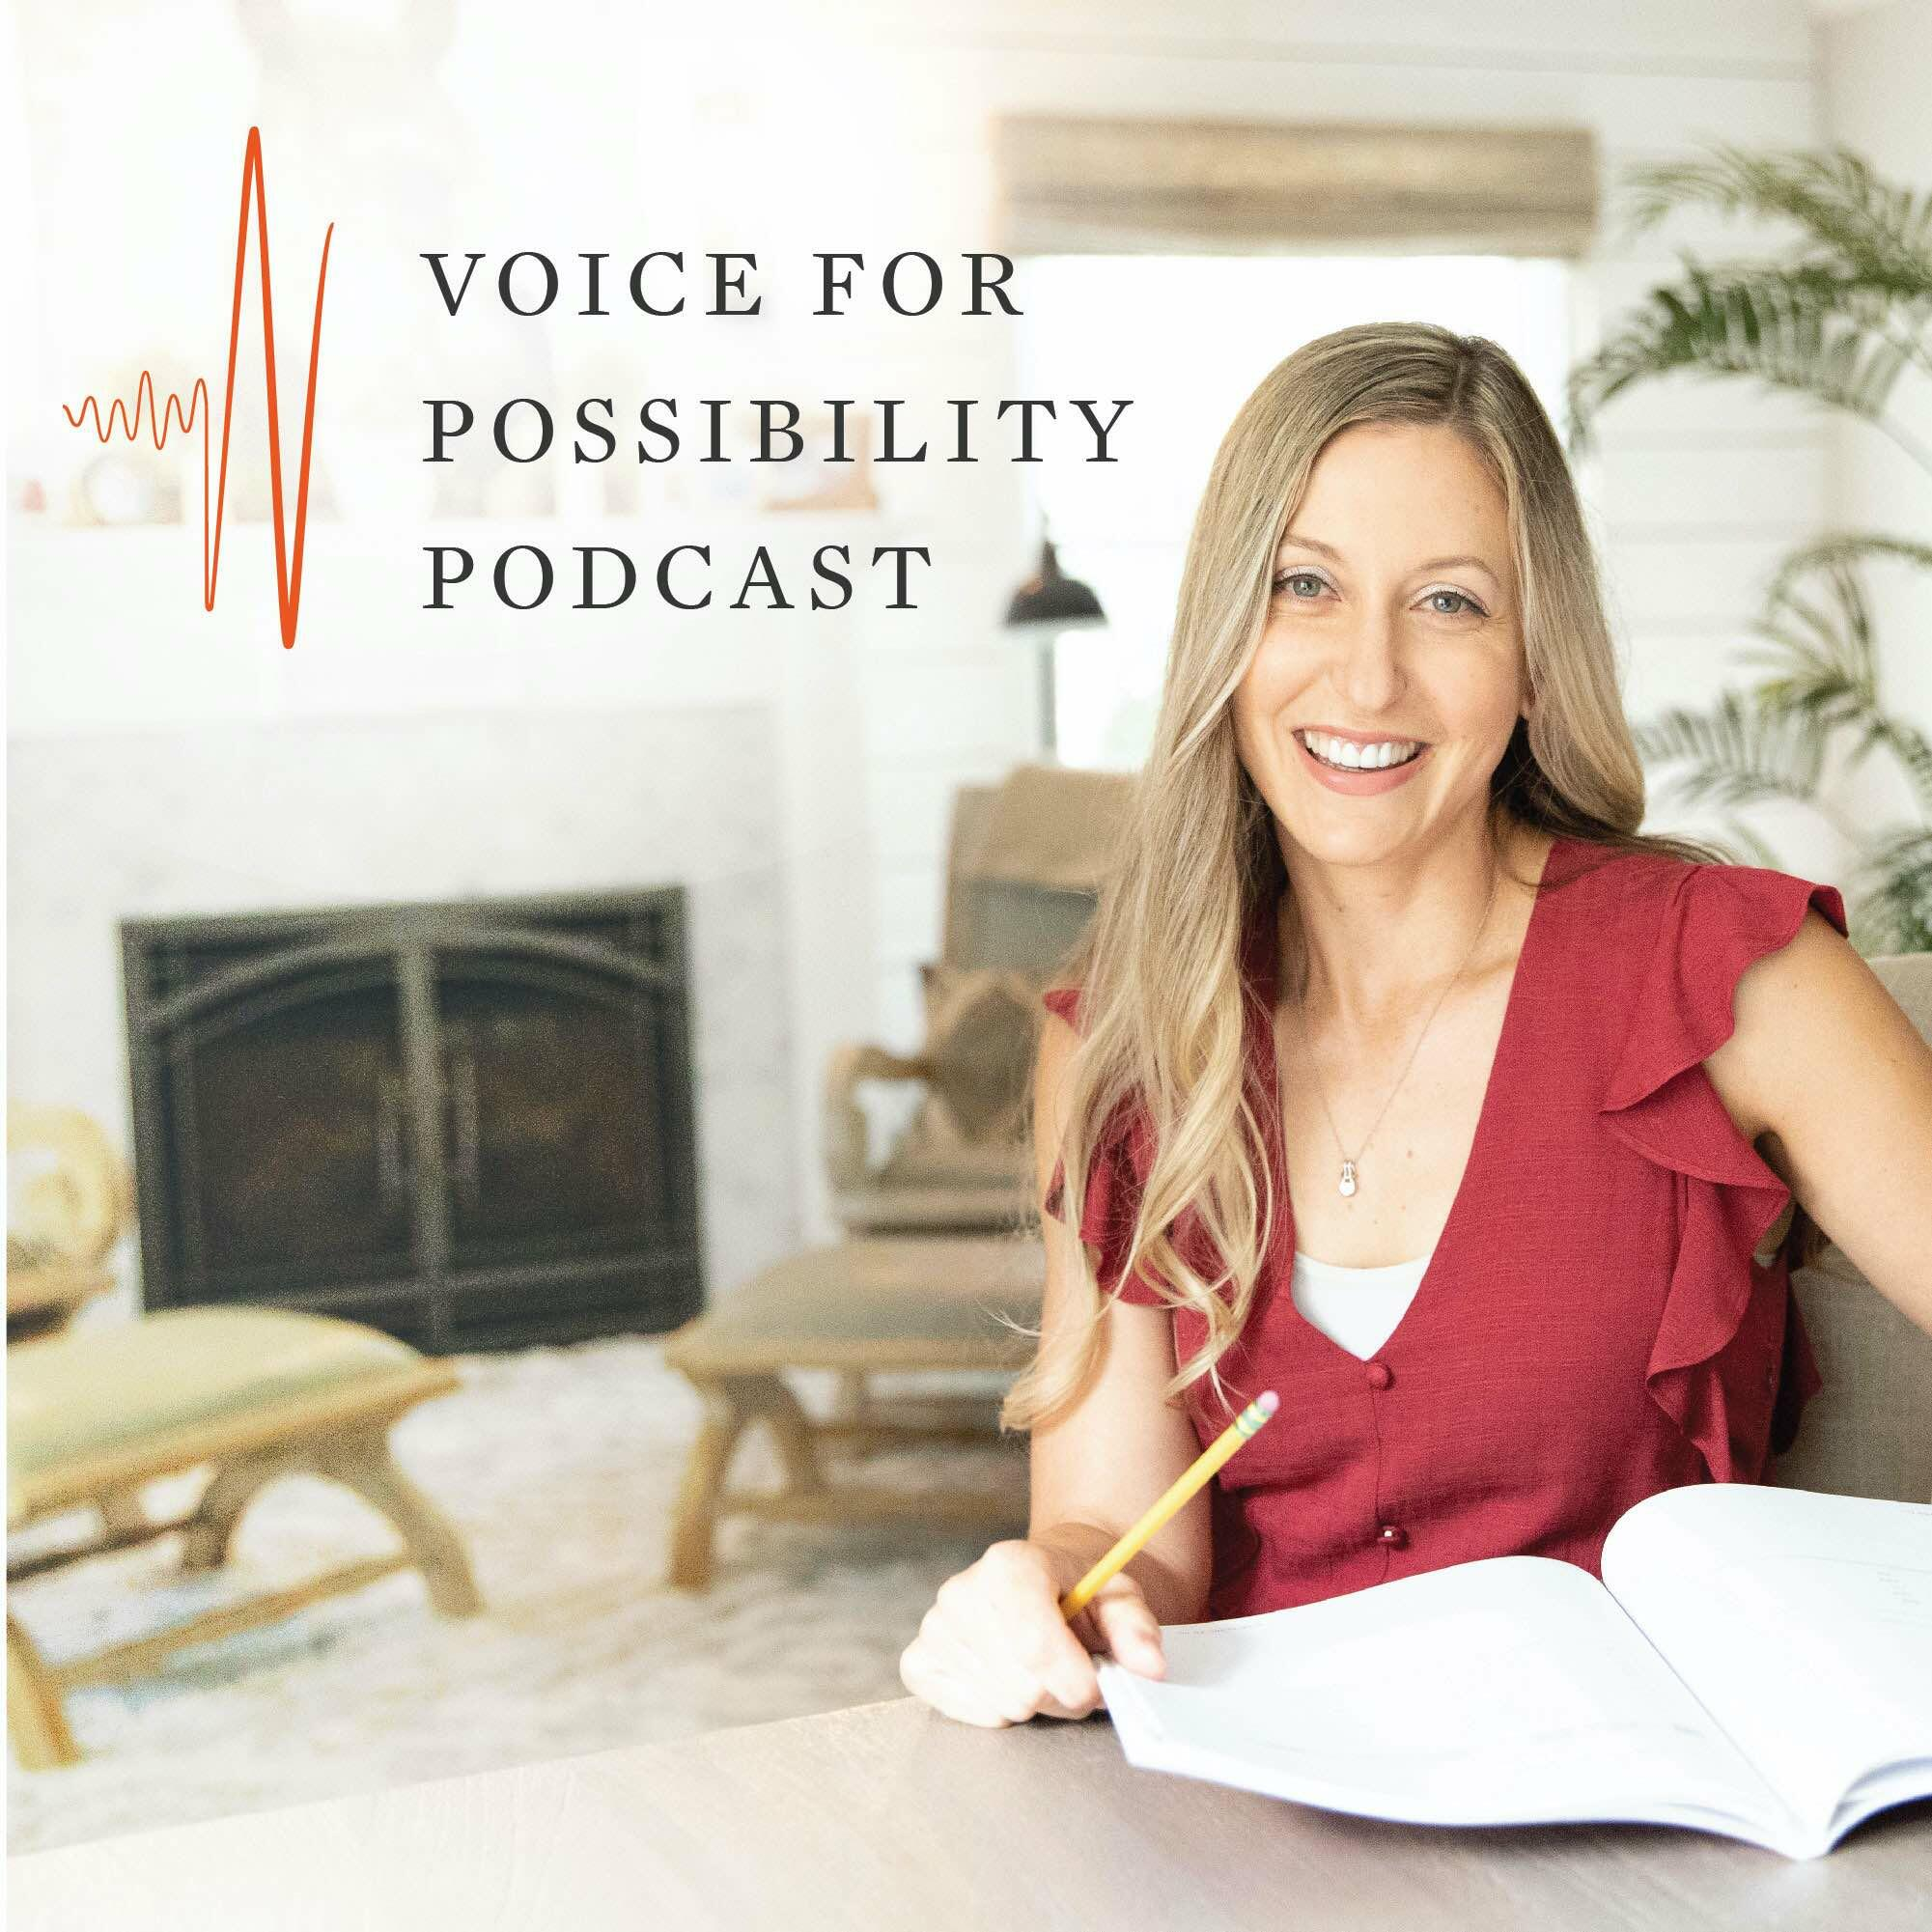 Voice for Possibility